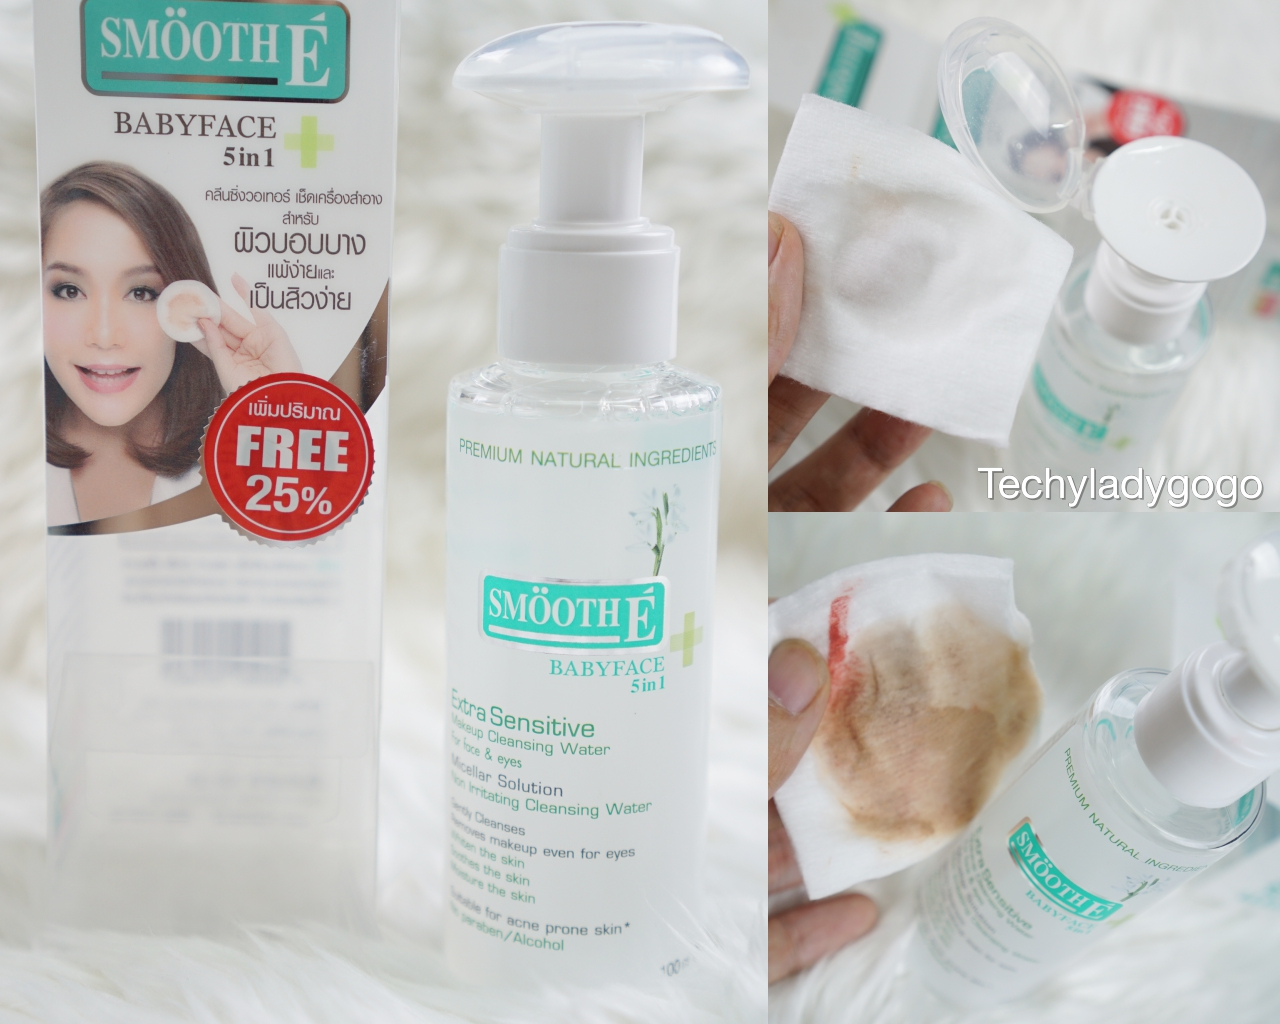 SMOOTH E BABYFACE 5 in 1 Cleansing Water สวยได้ไม่เกินงบ 149 บาทใน 7-eleven